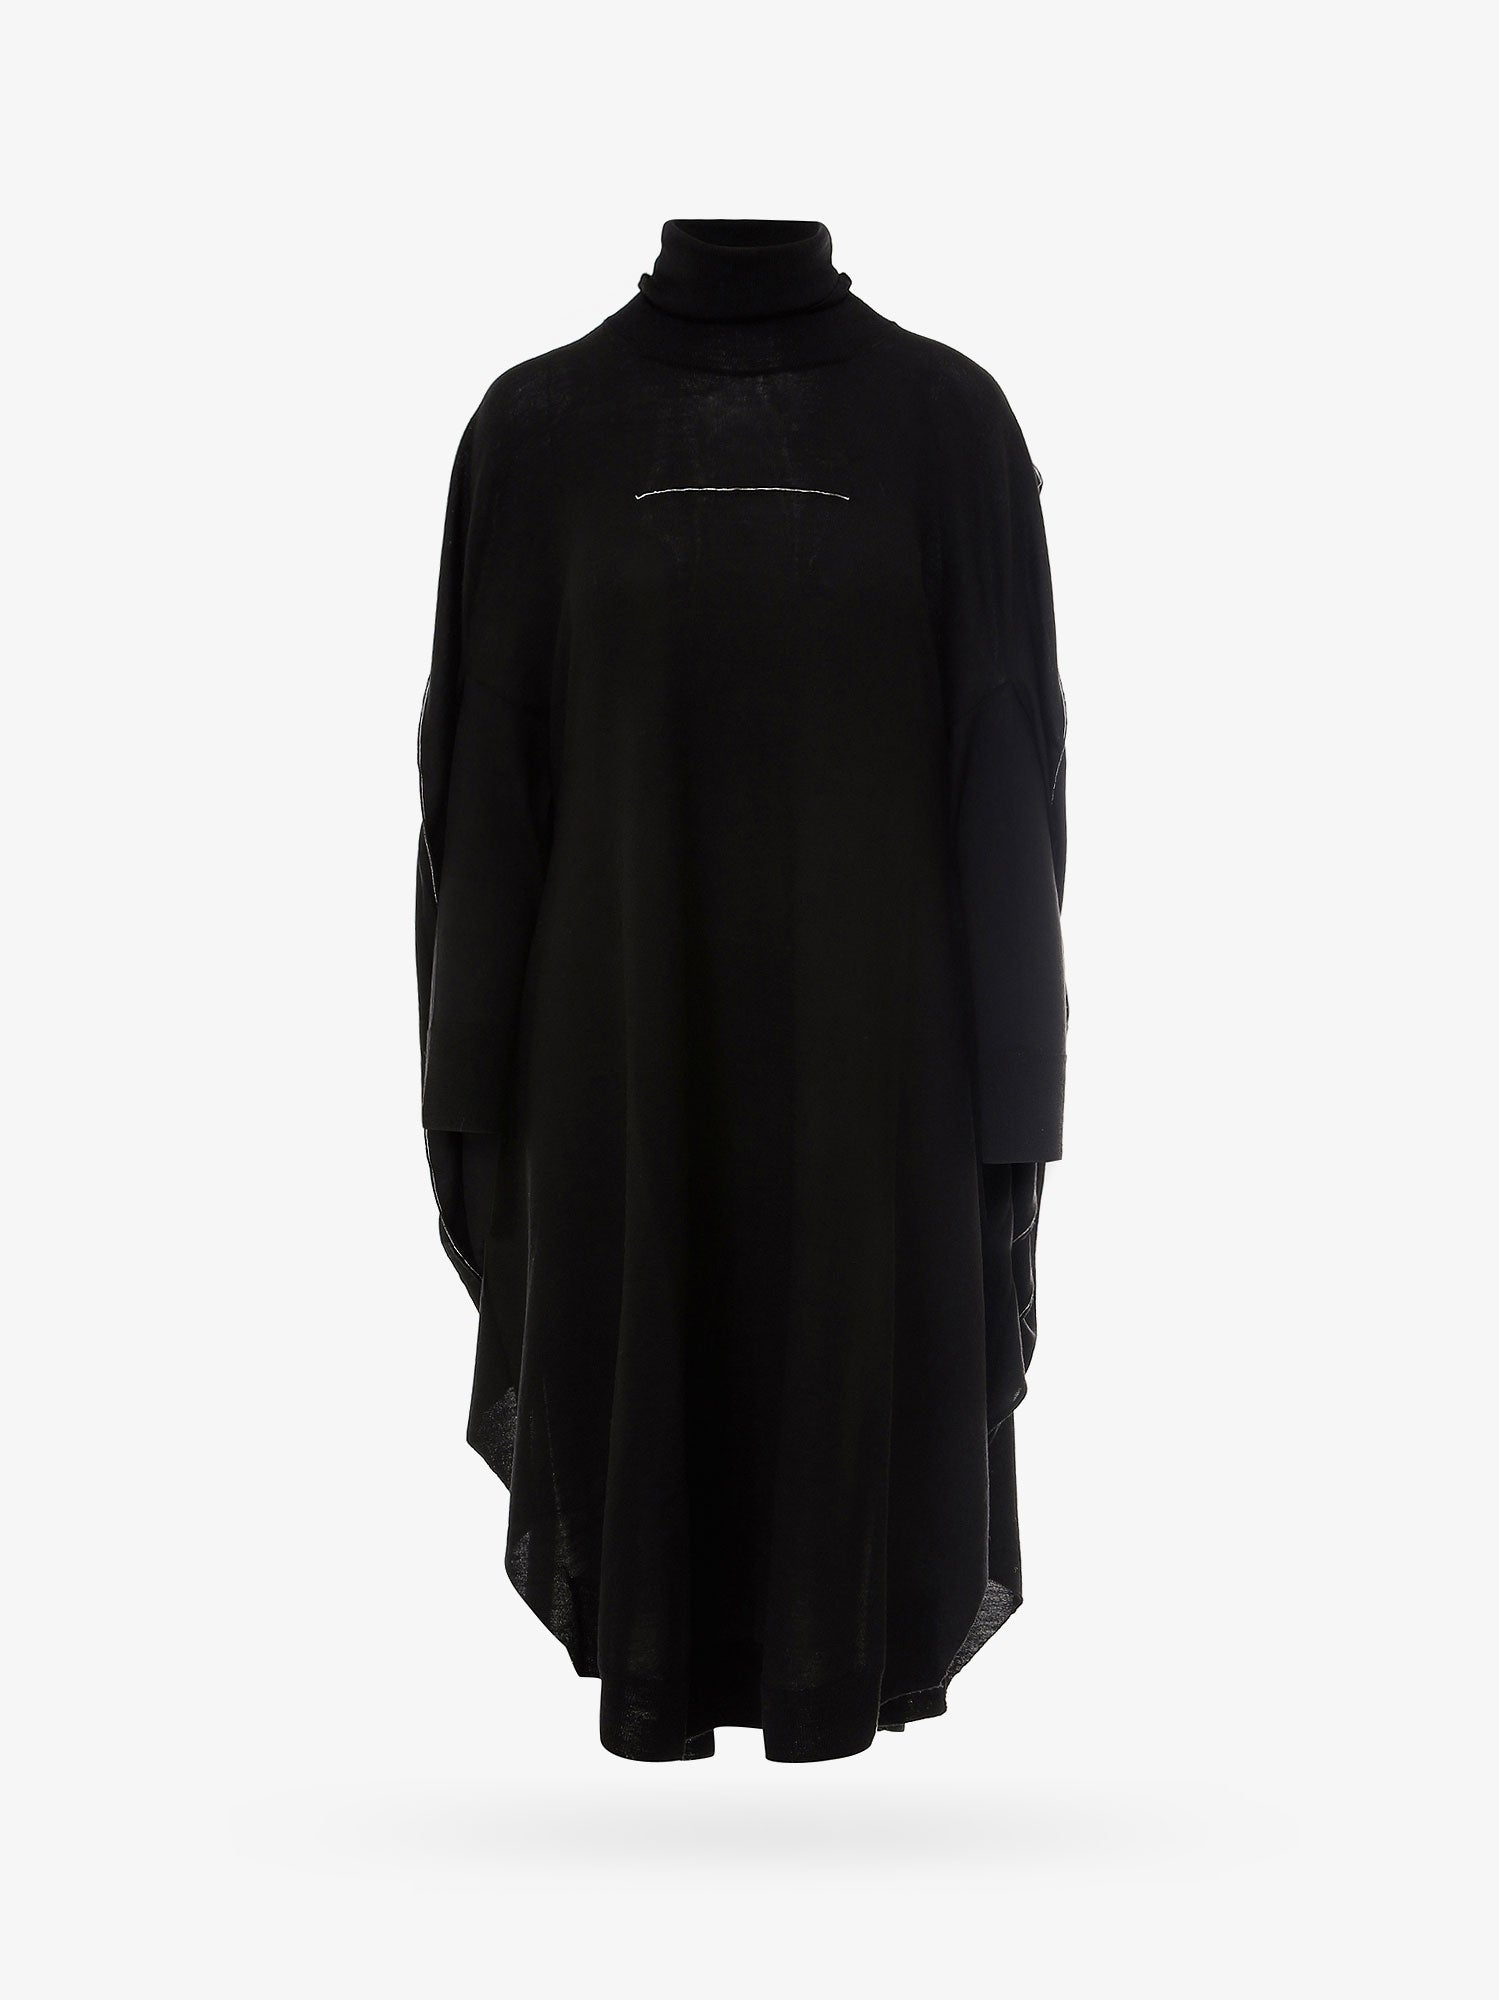 Mm6 Maison Margiela Dresses DRESS